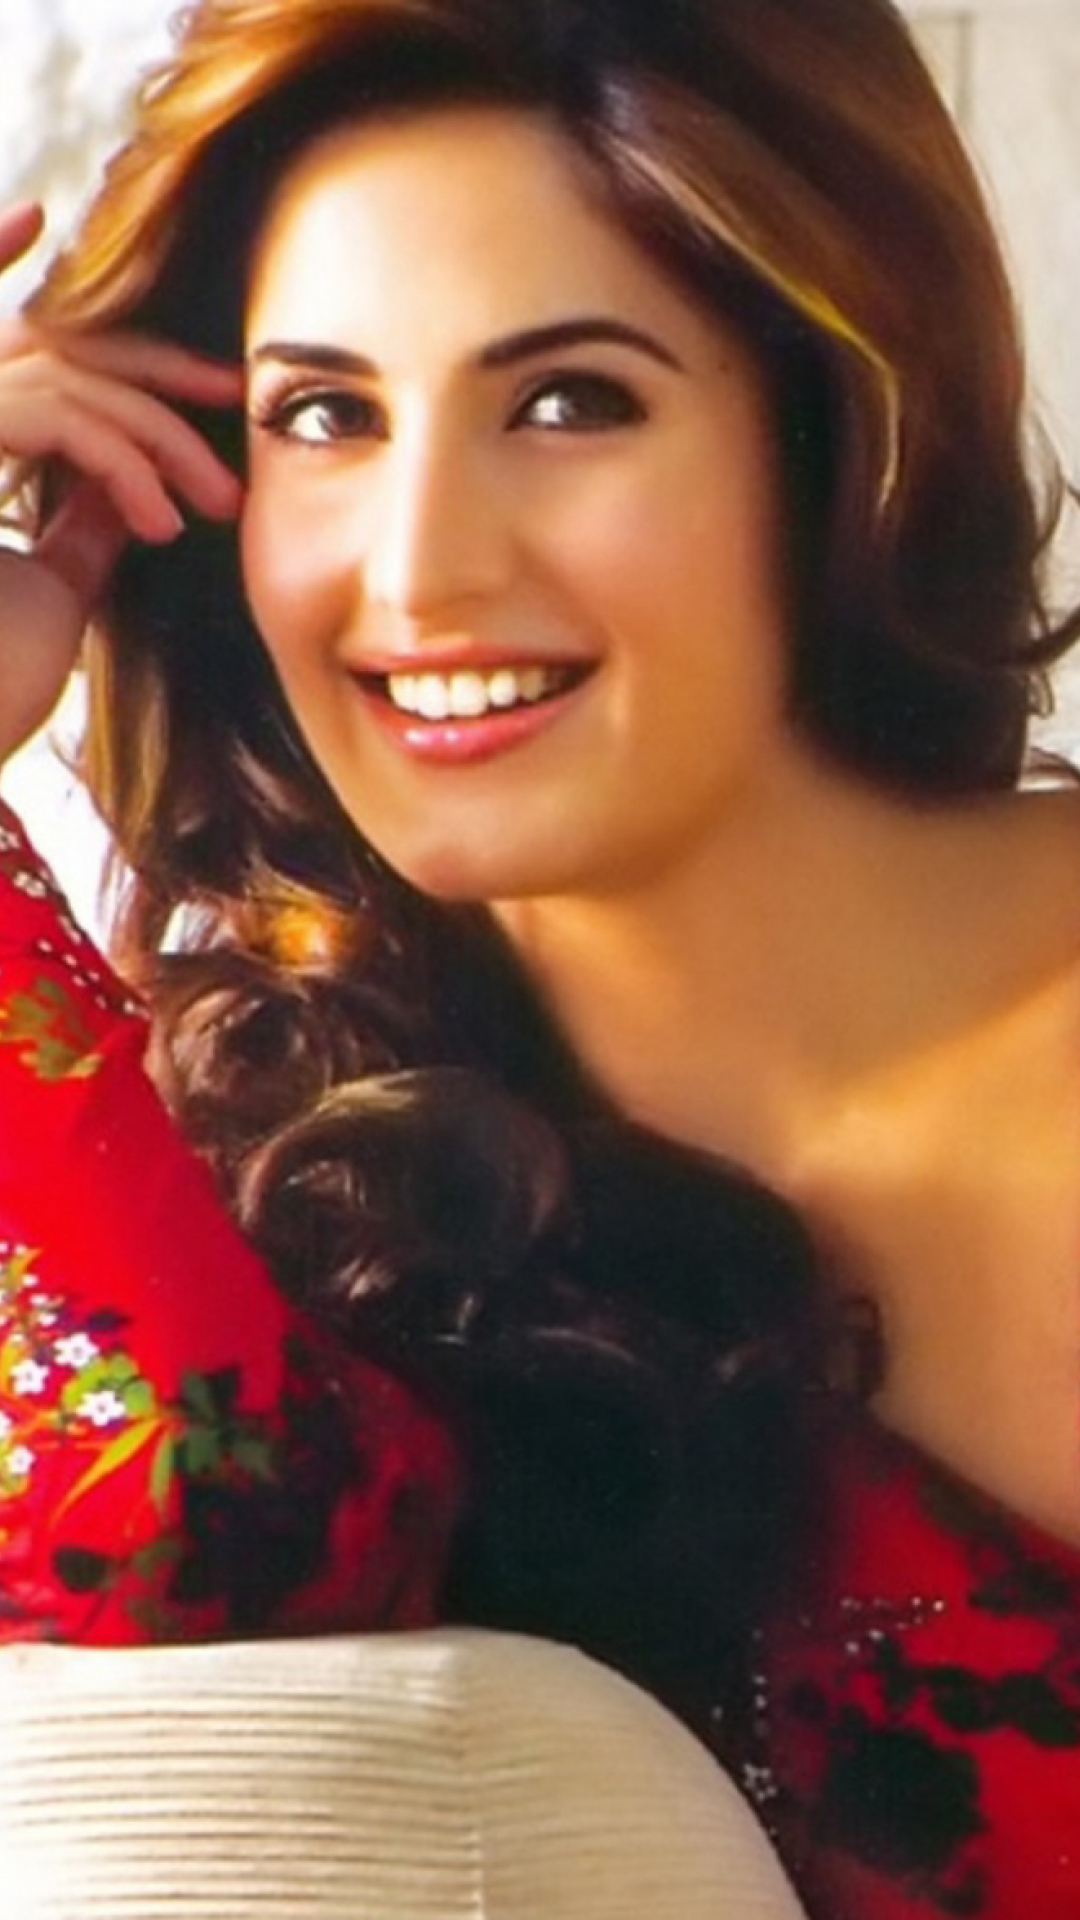 download katrina kaif in red dress 1080x1920 resolution, full hd